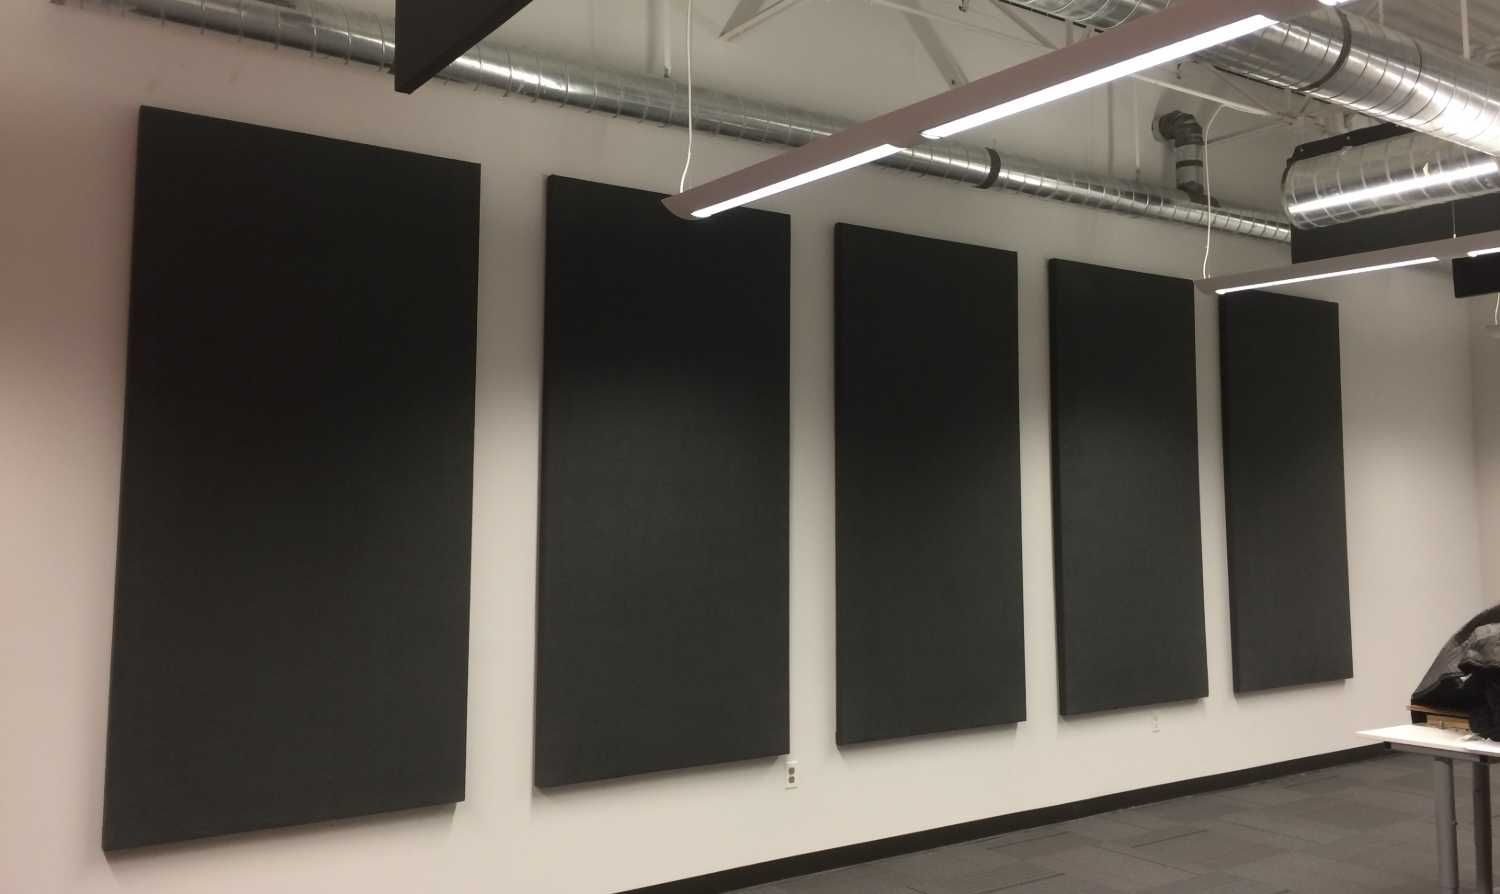 Local Tech Company Needs Filming Room Update